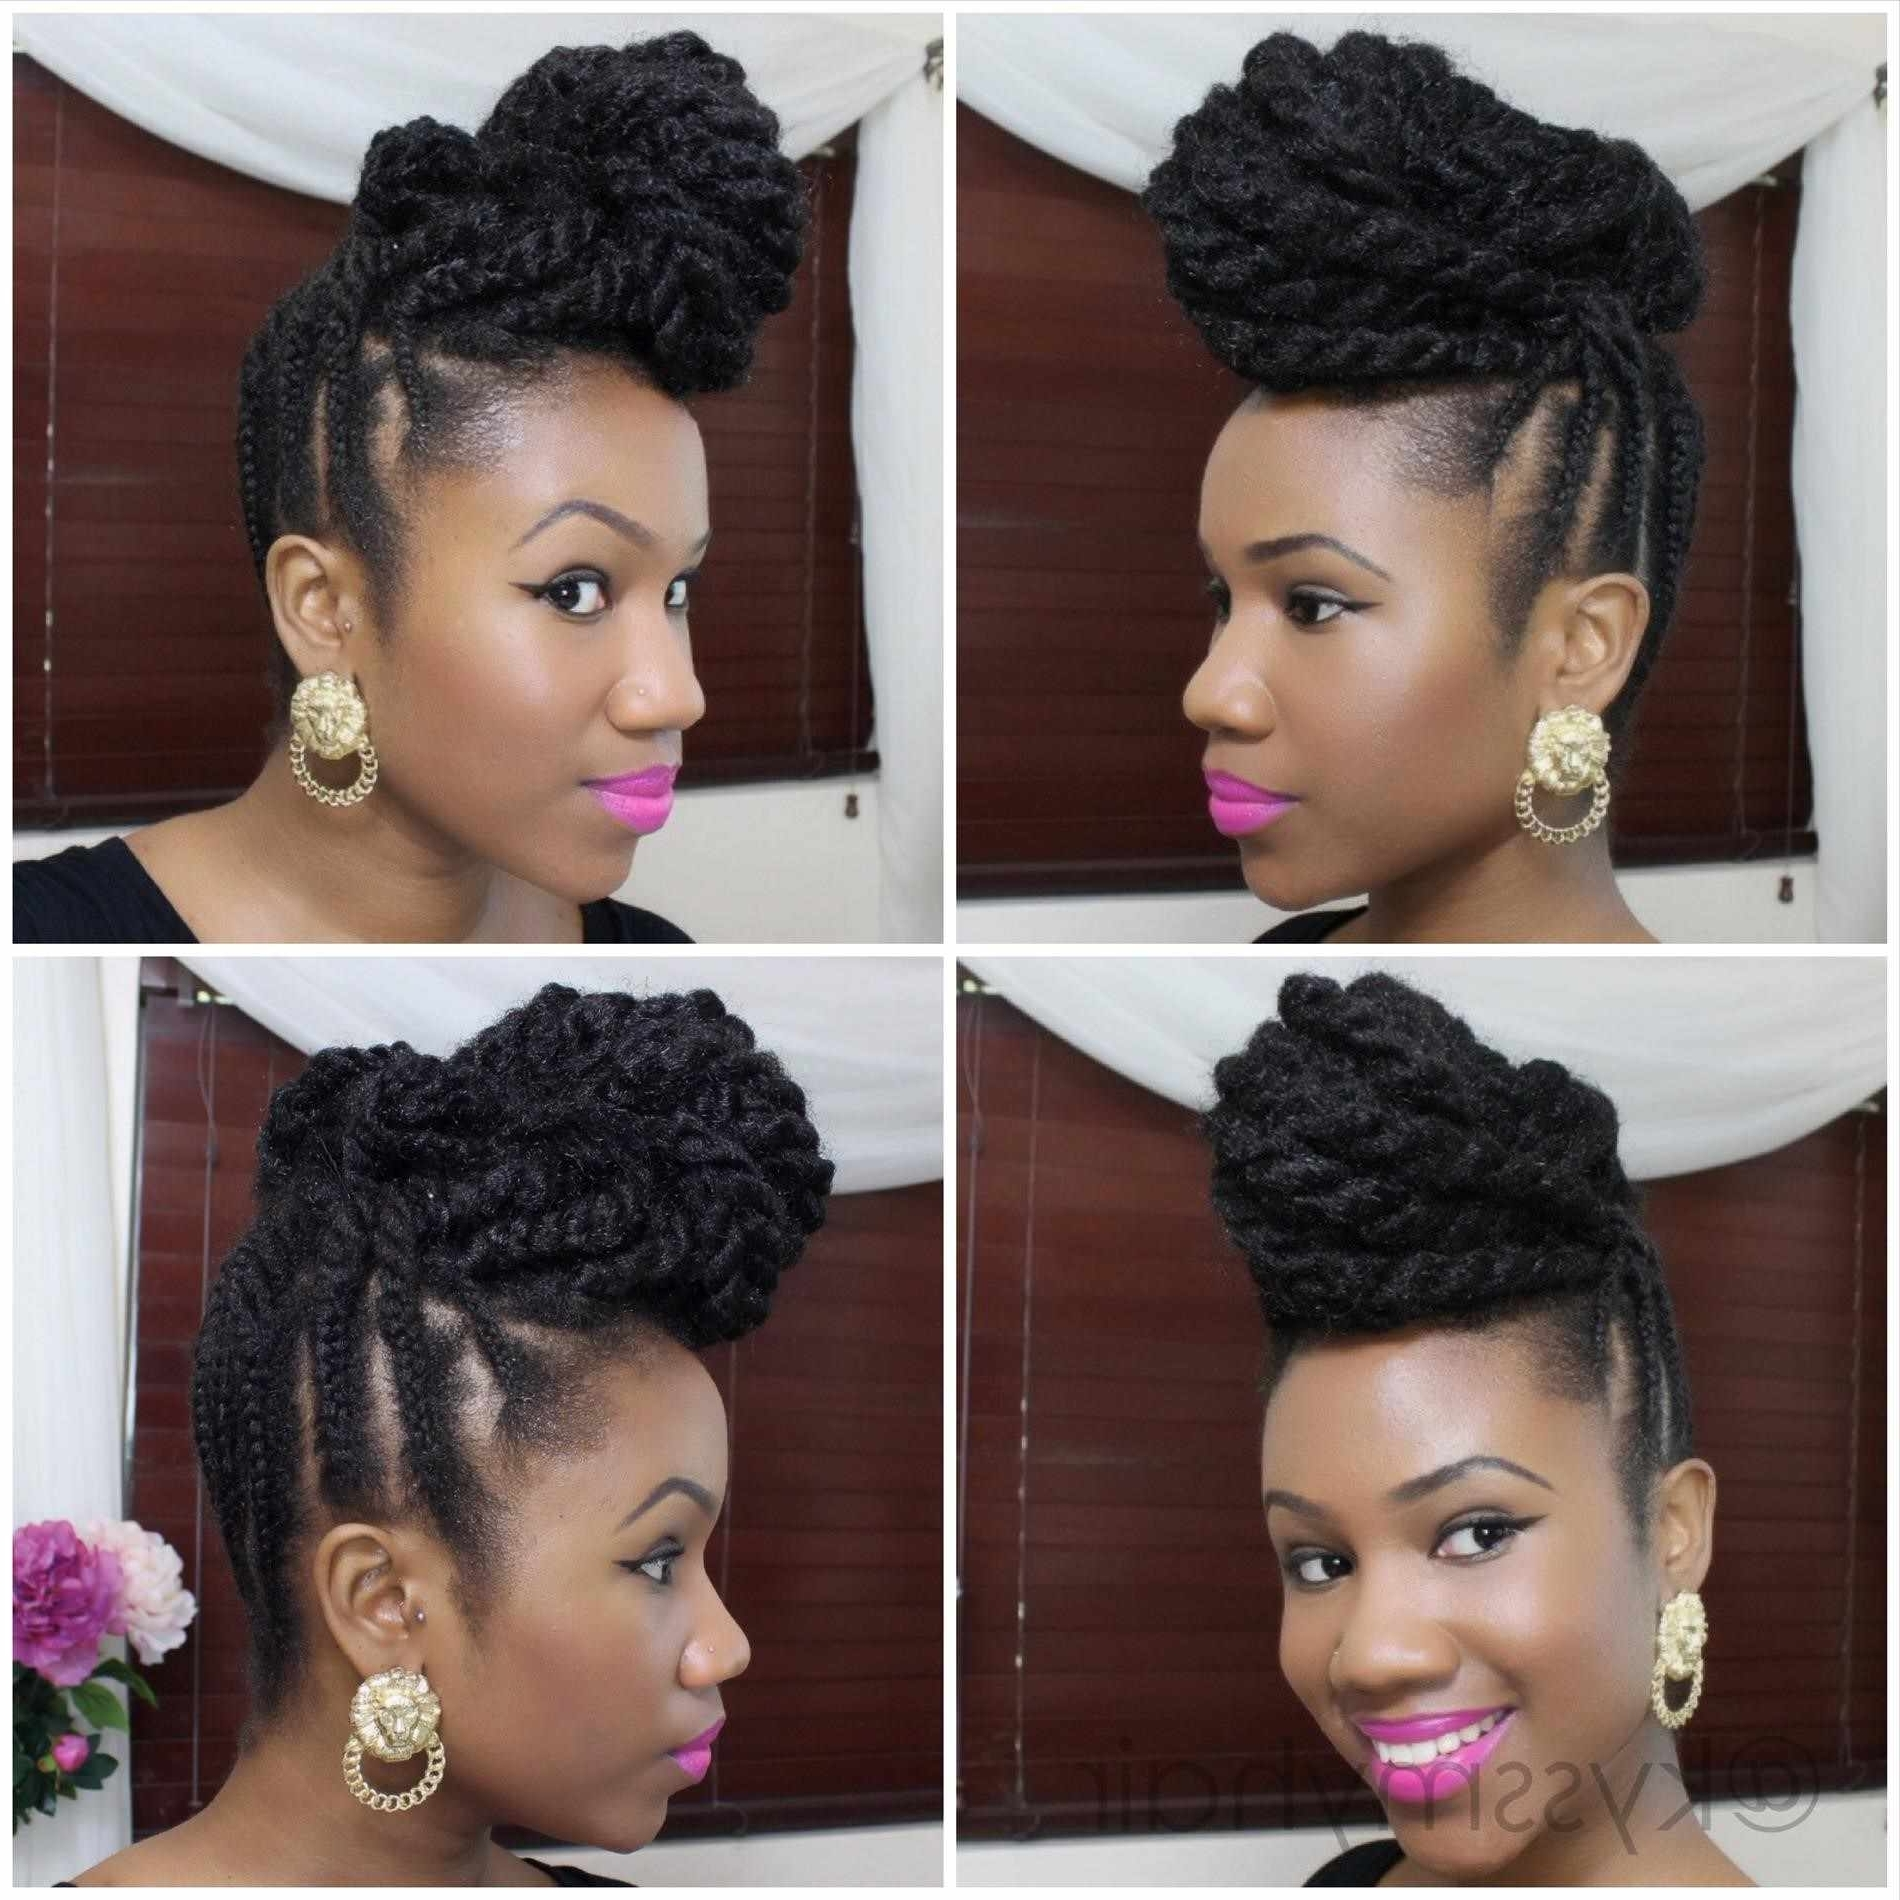 A Natural Braids African Braids Hairstyles Updo 2016 Hairstyles With Intended For Braided Updo Hairstyles With Extensions (View 14 of 15)